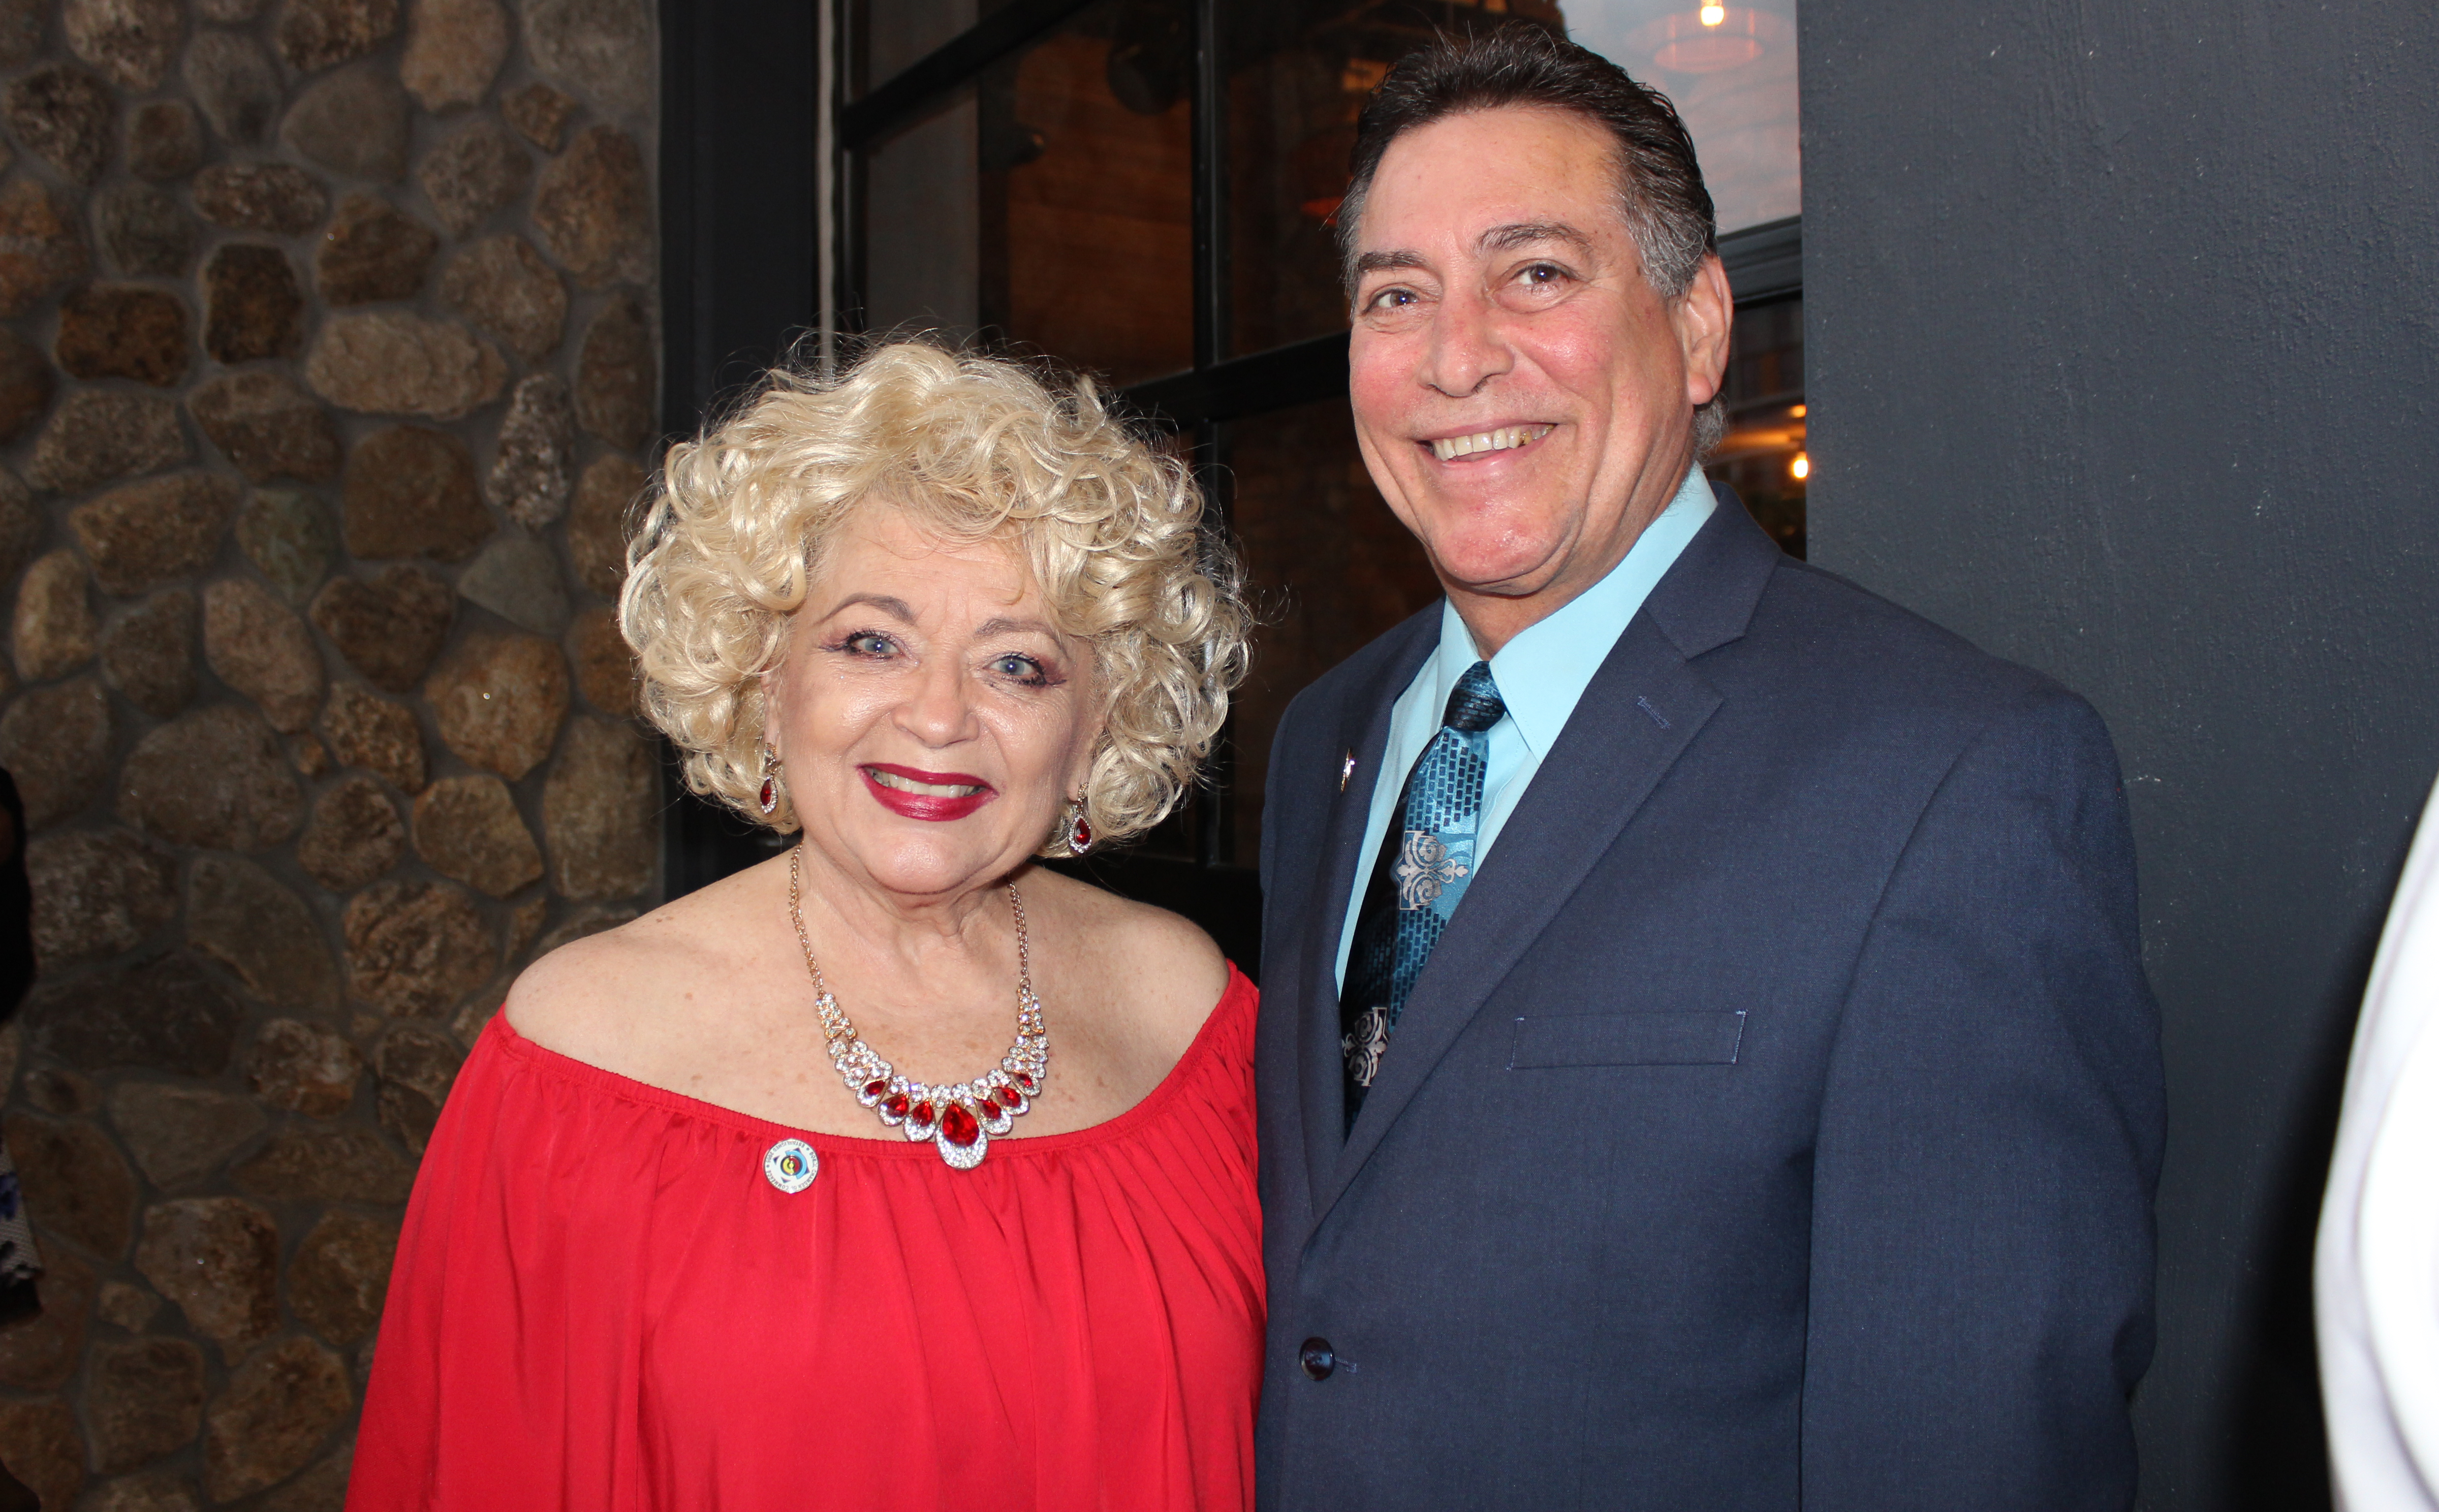 Doral Chamber of Commerce introduces Novecento Grand Opening, photo with Blanche de Jesus.